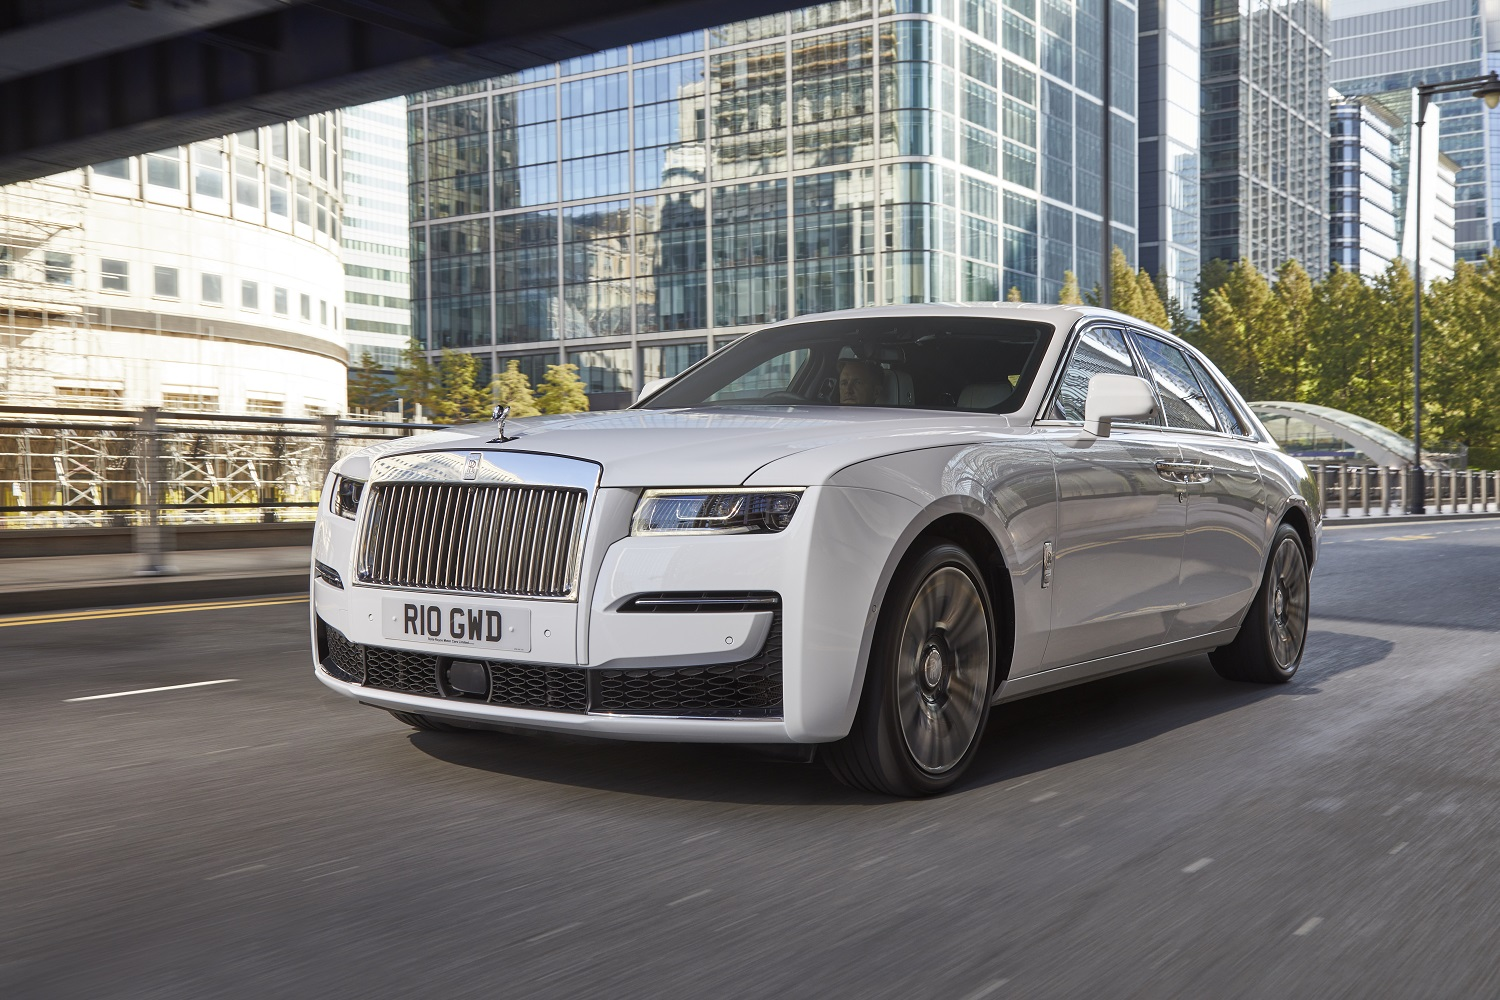 The New Rolls-Royce Ghost Arrives In United Kingdom Showrooms